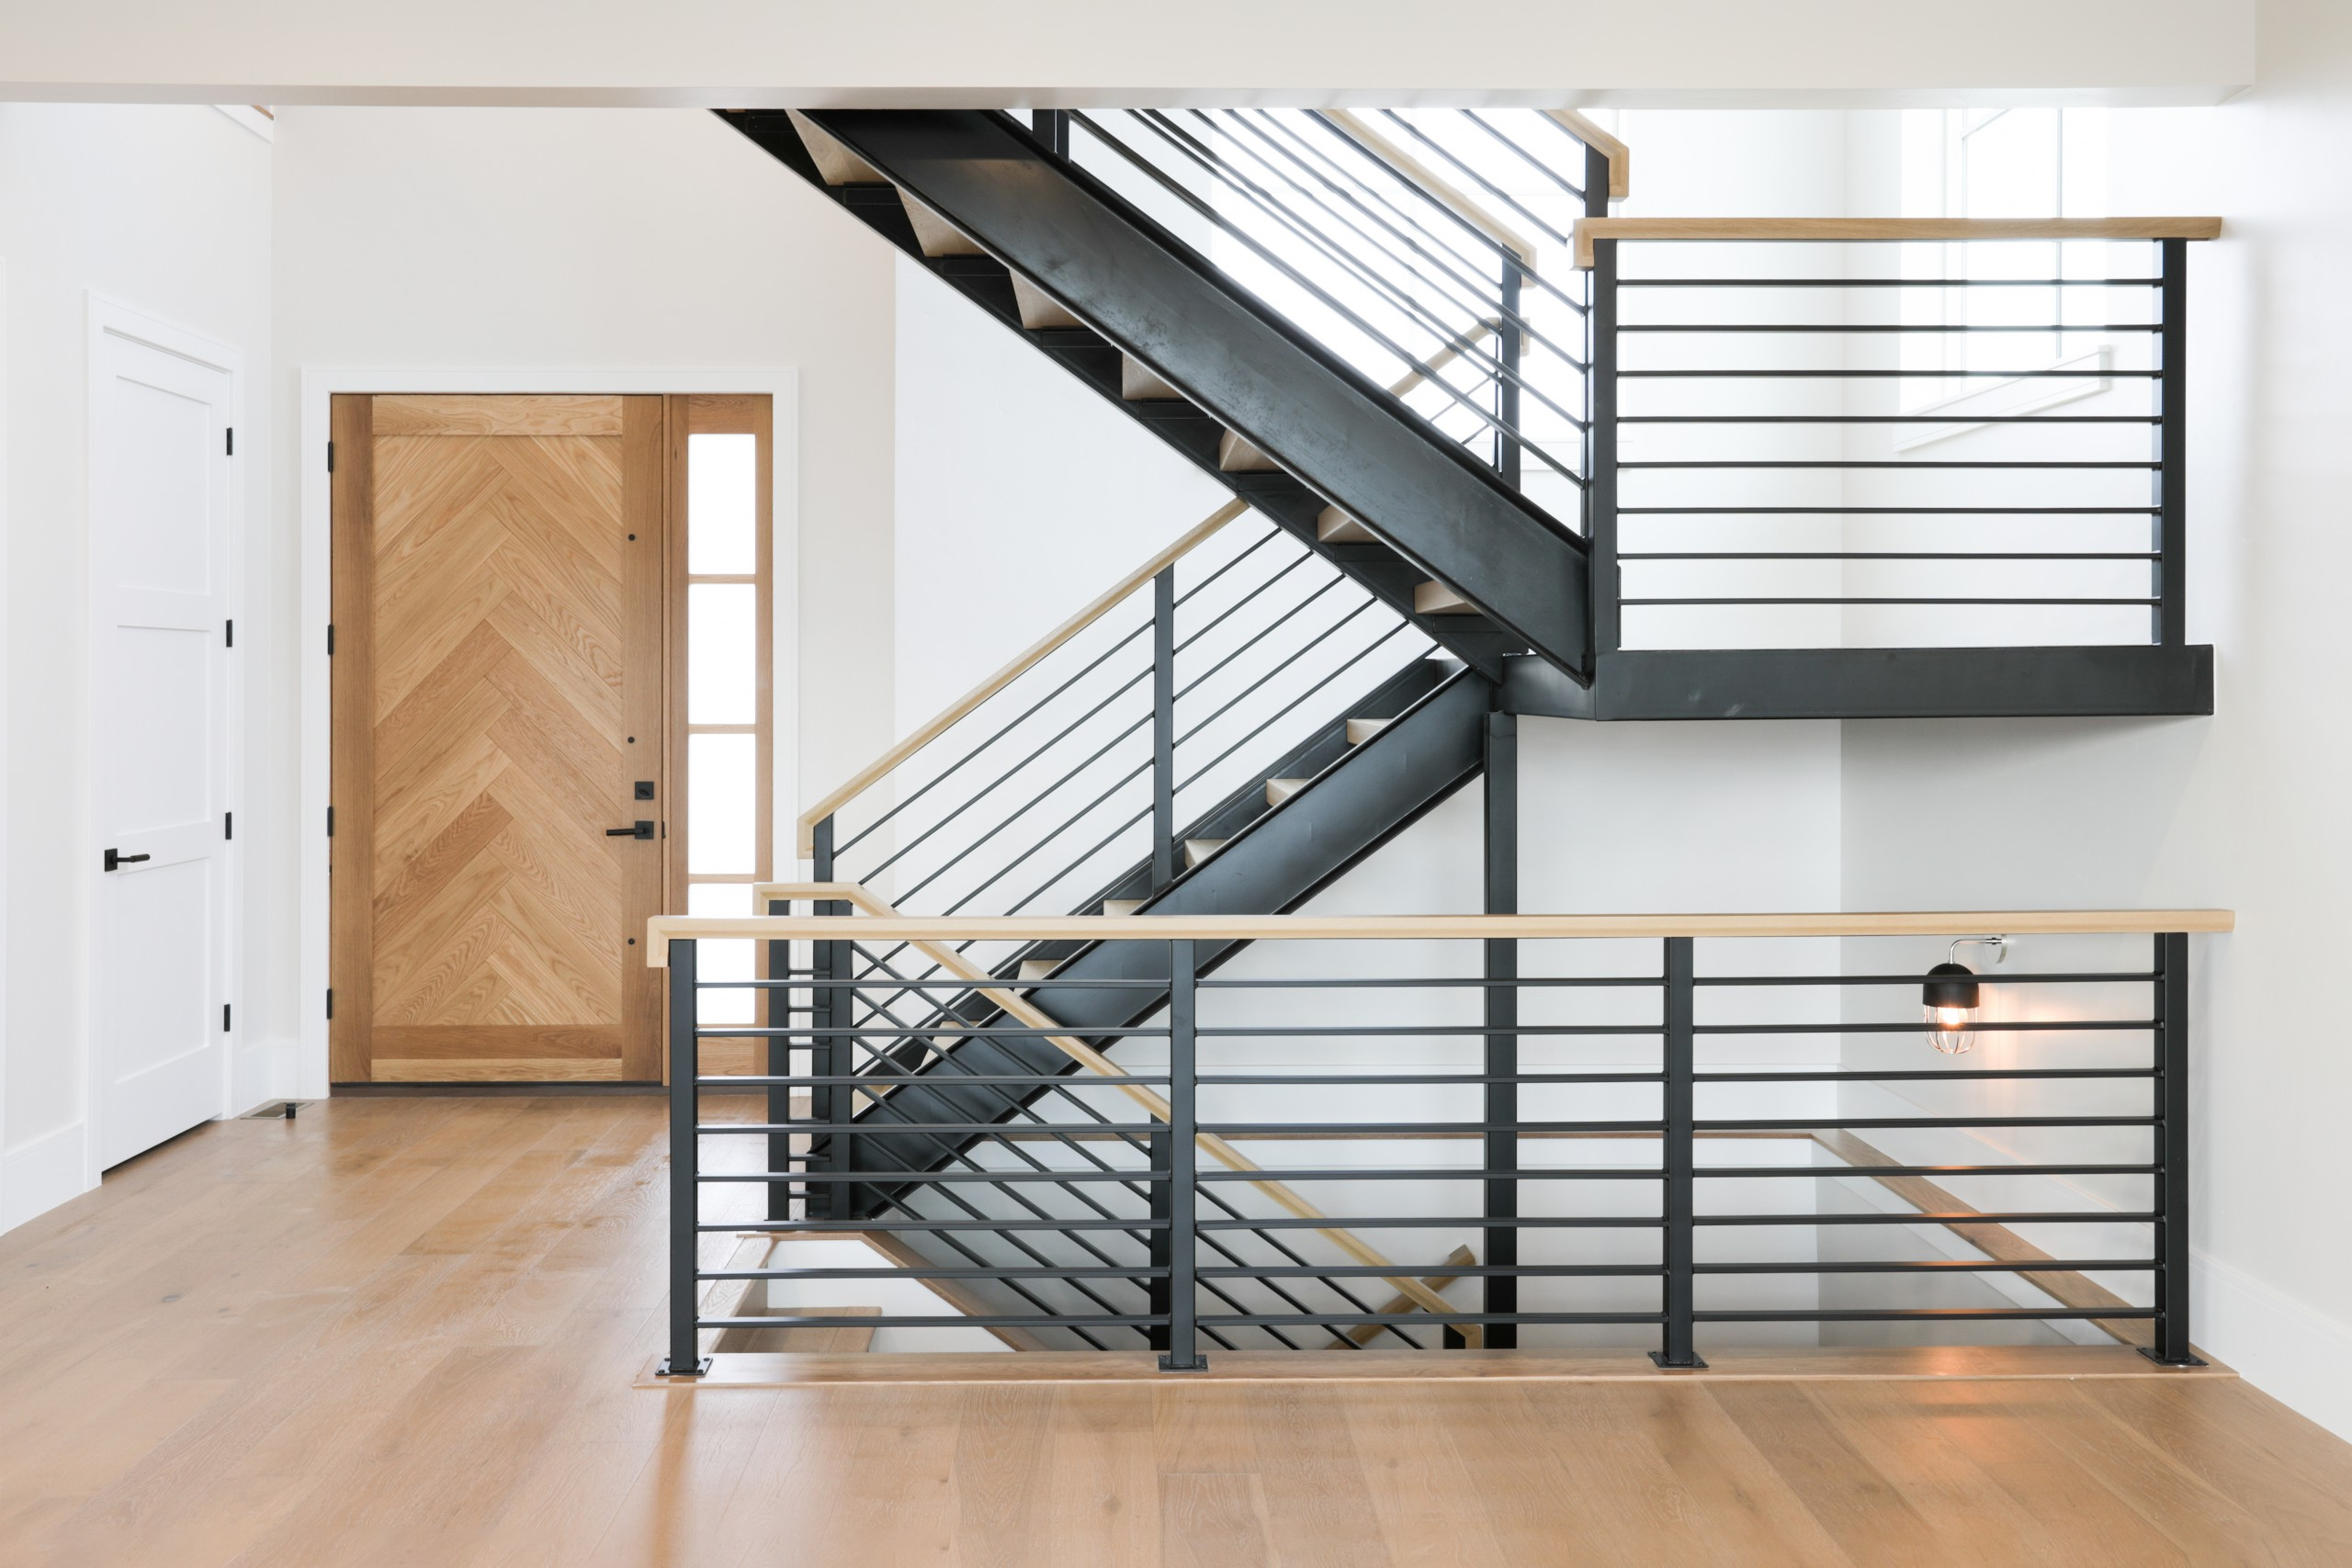 Interior Photography: Stairs and Front Door